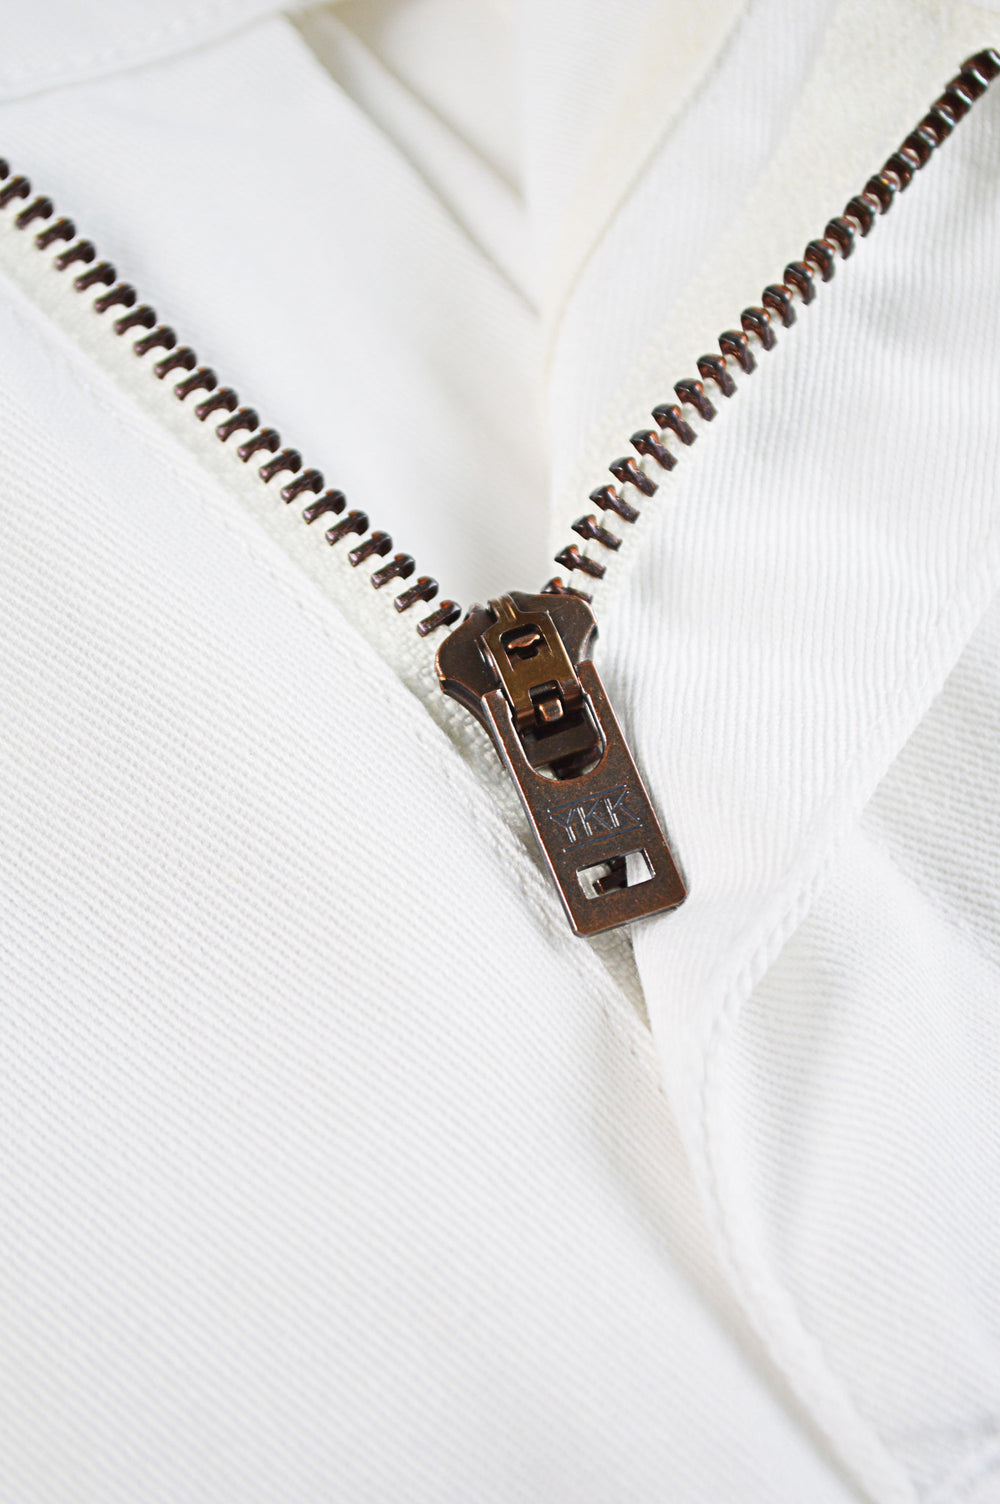 raw vintage ykk zipper on white chinos